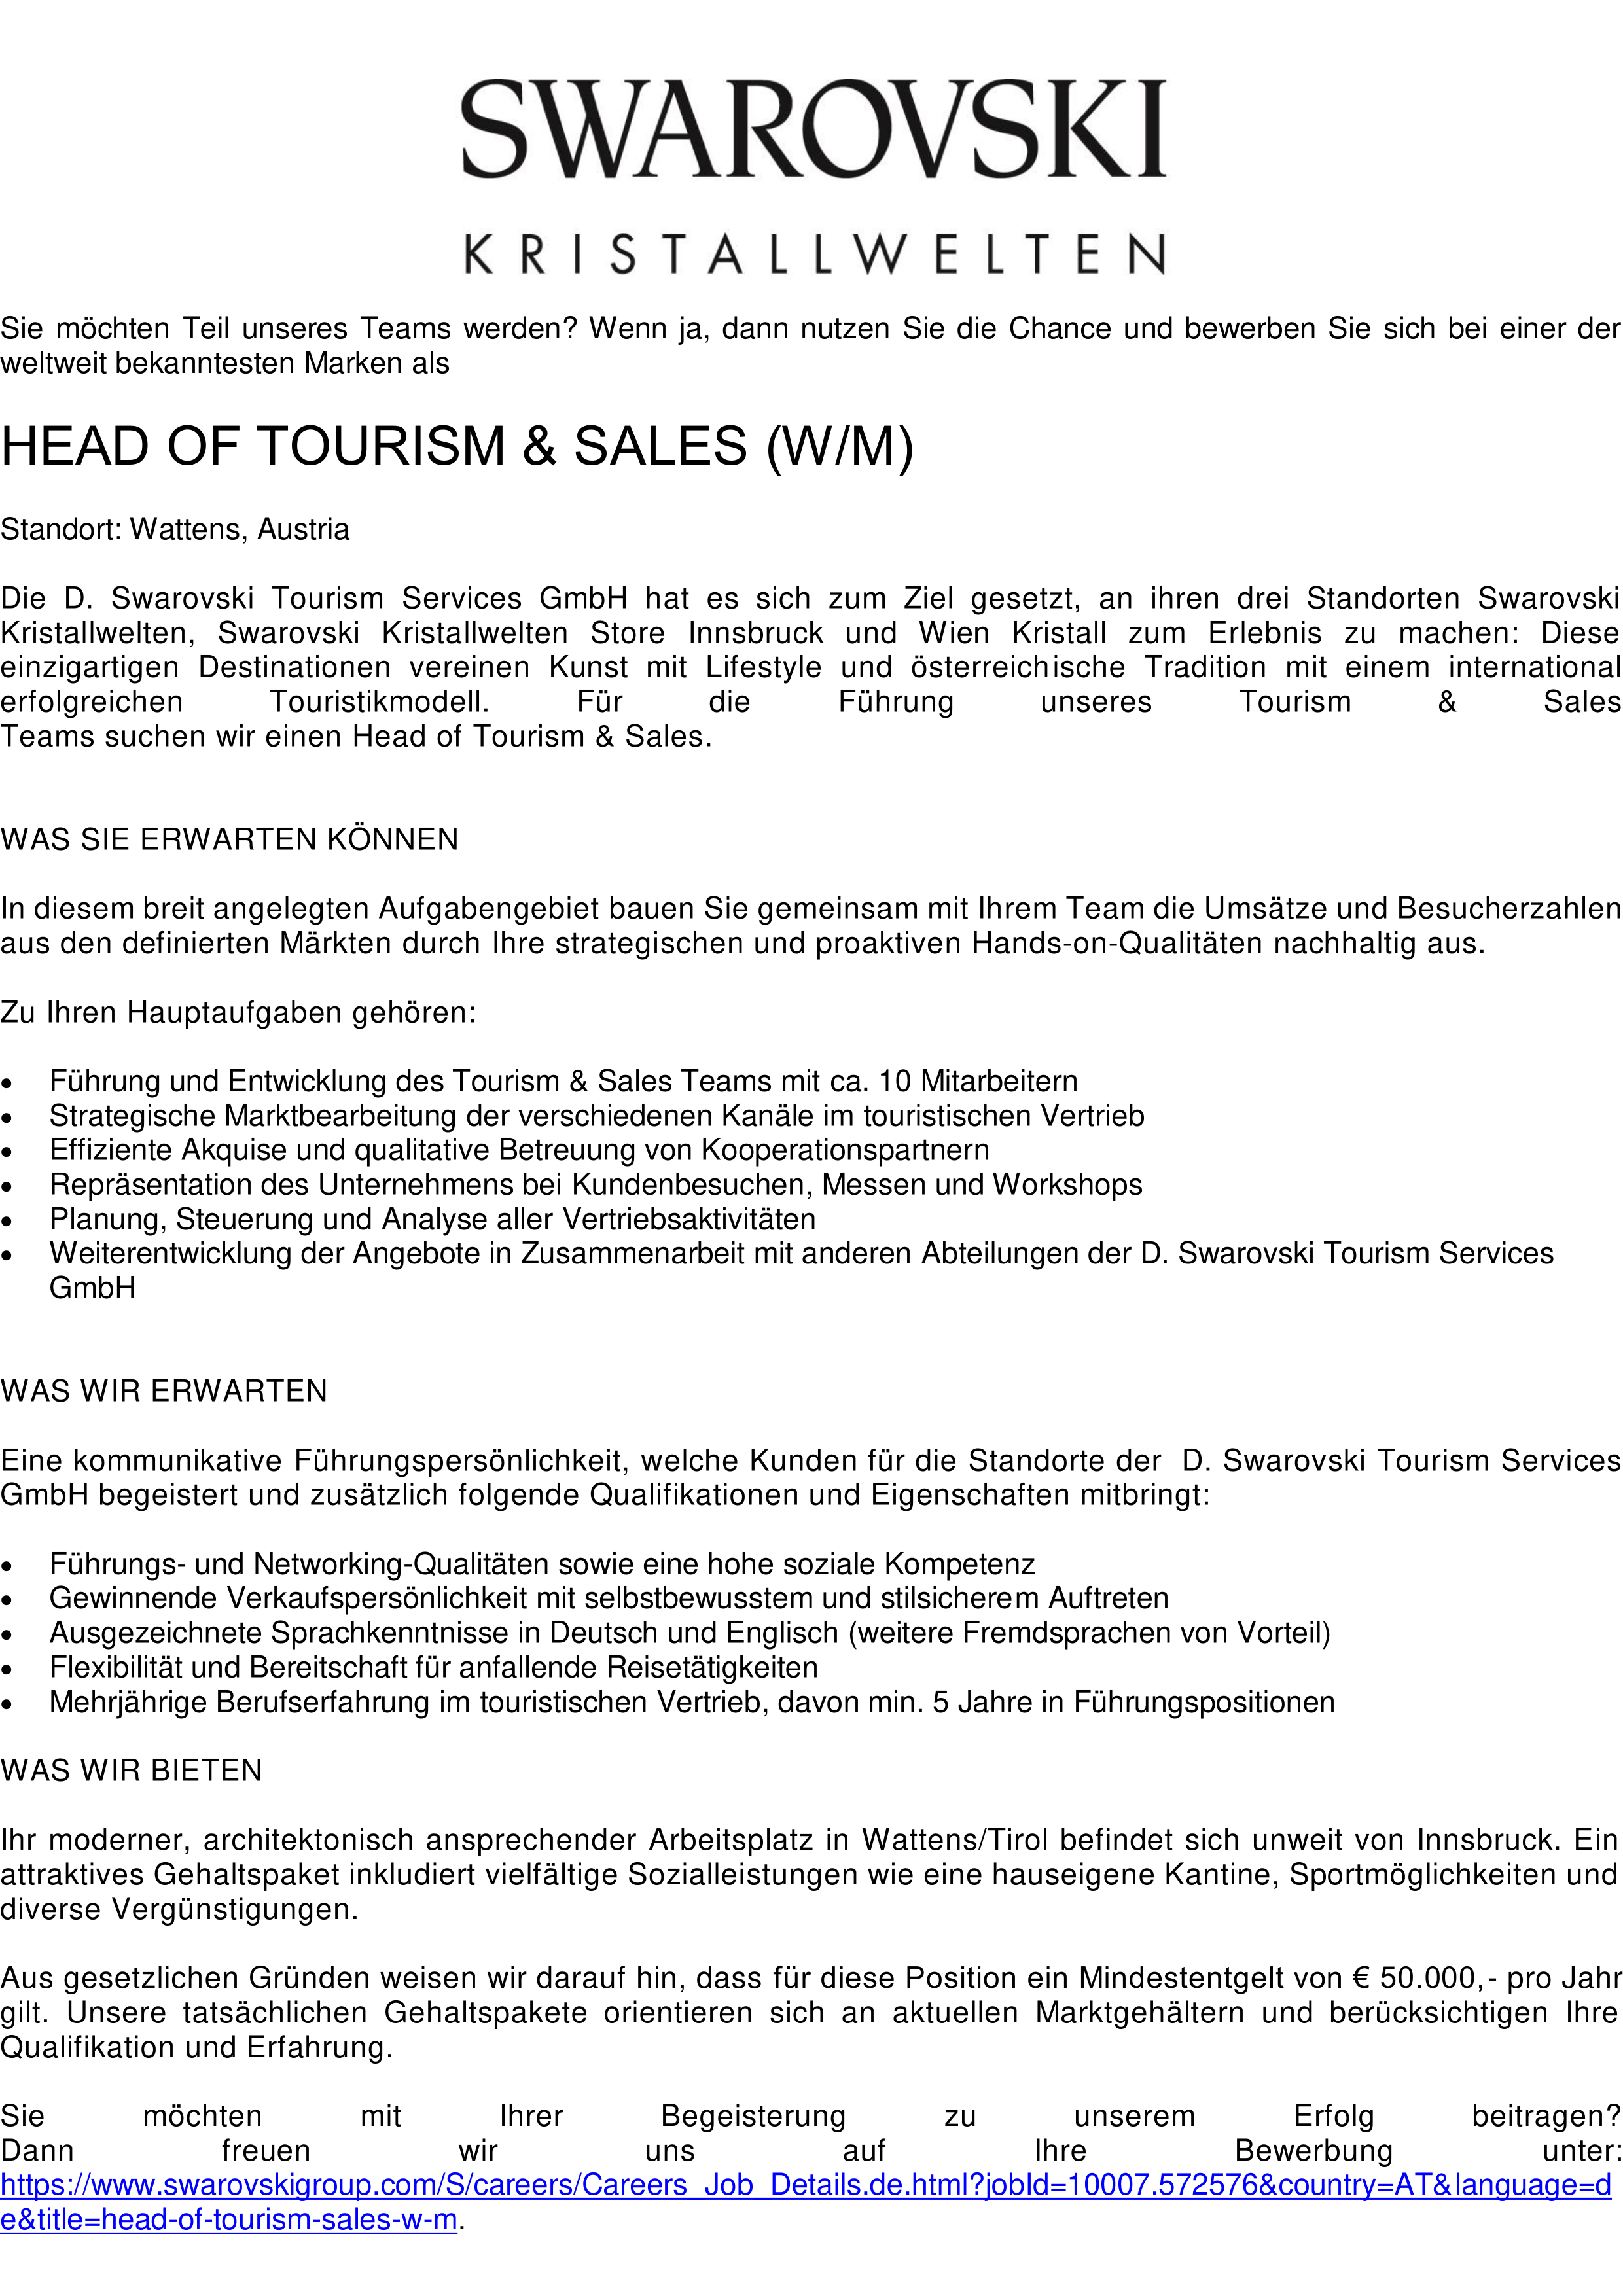 HEAD OF TOURISM & SALES (M/W)